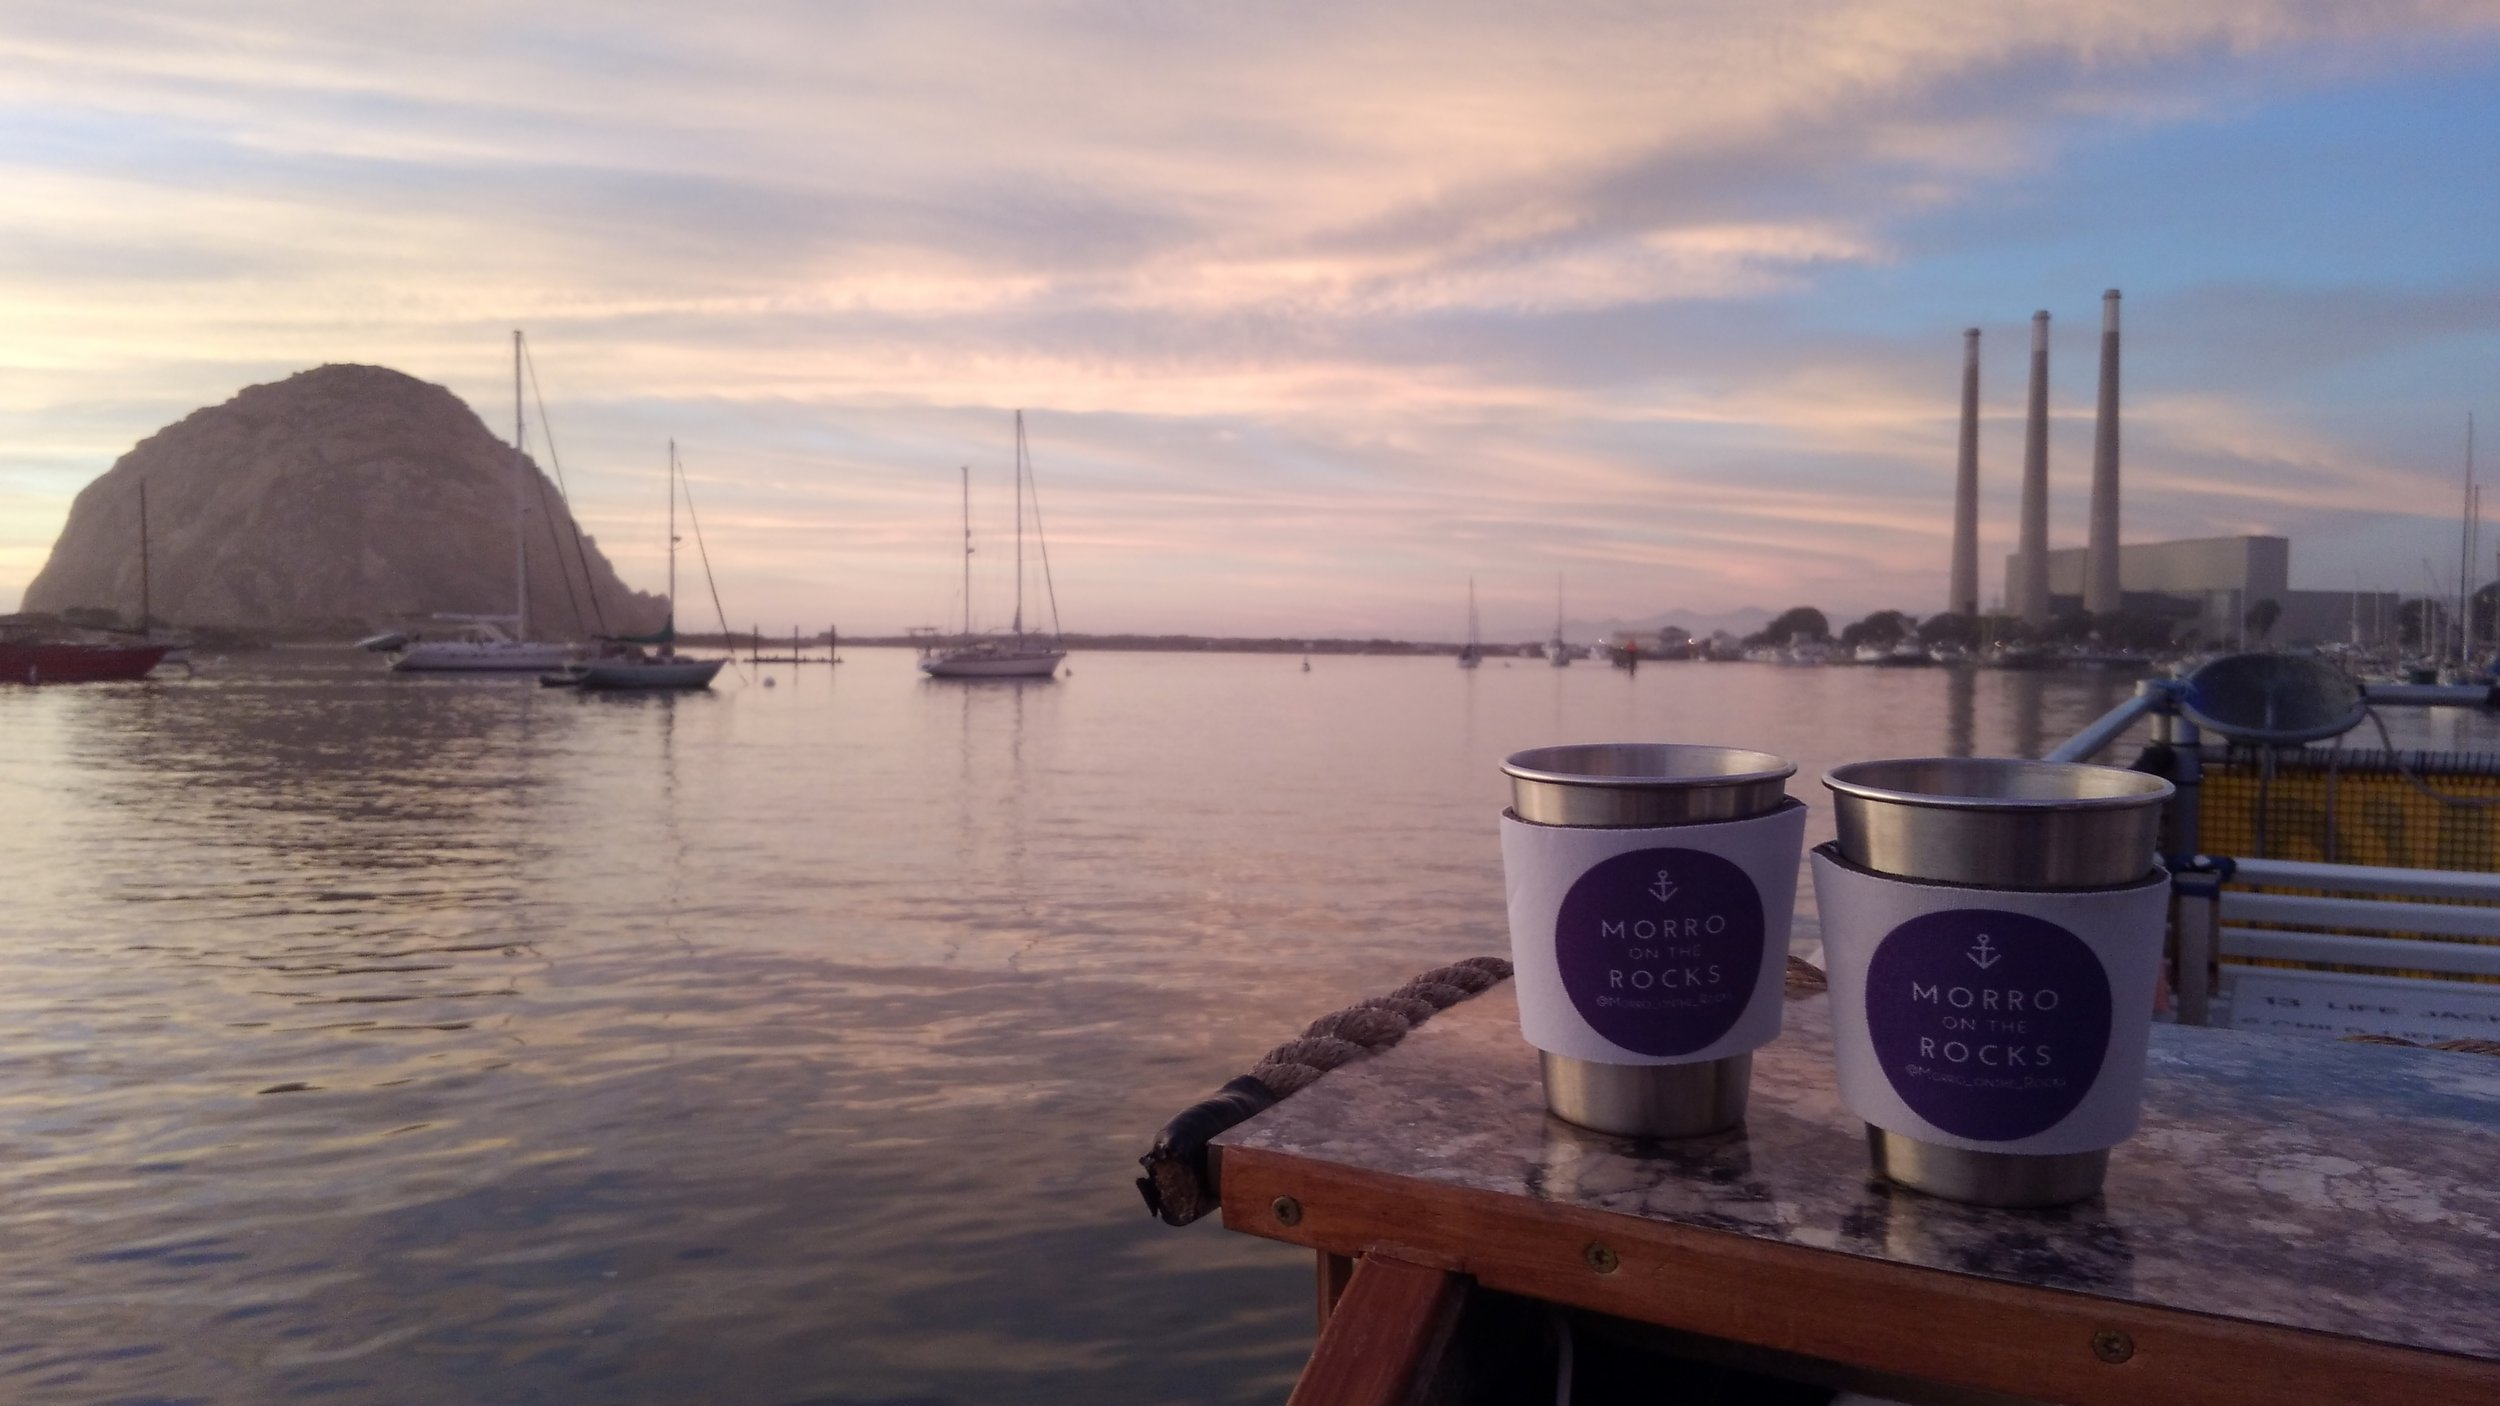 Friday Sunsets - Summer, 2019 7:30-9pm Kick off your weekend with the best view of sunset in Morro Bay! Dance, drink, chill on board the Dos Osos party boat for these public, ticketed events.